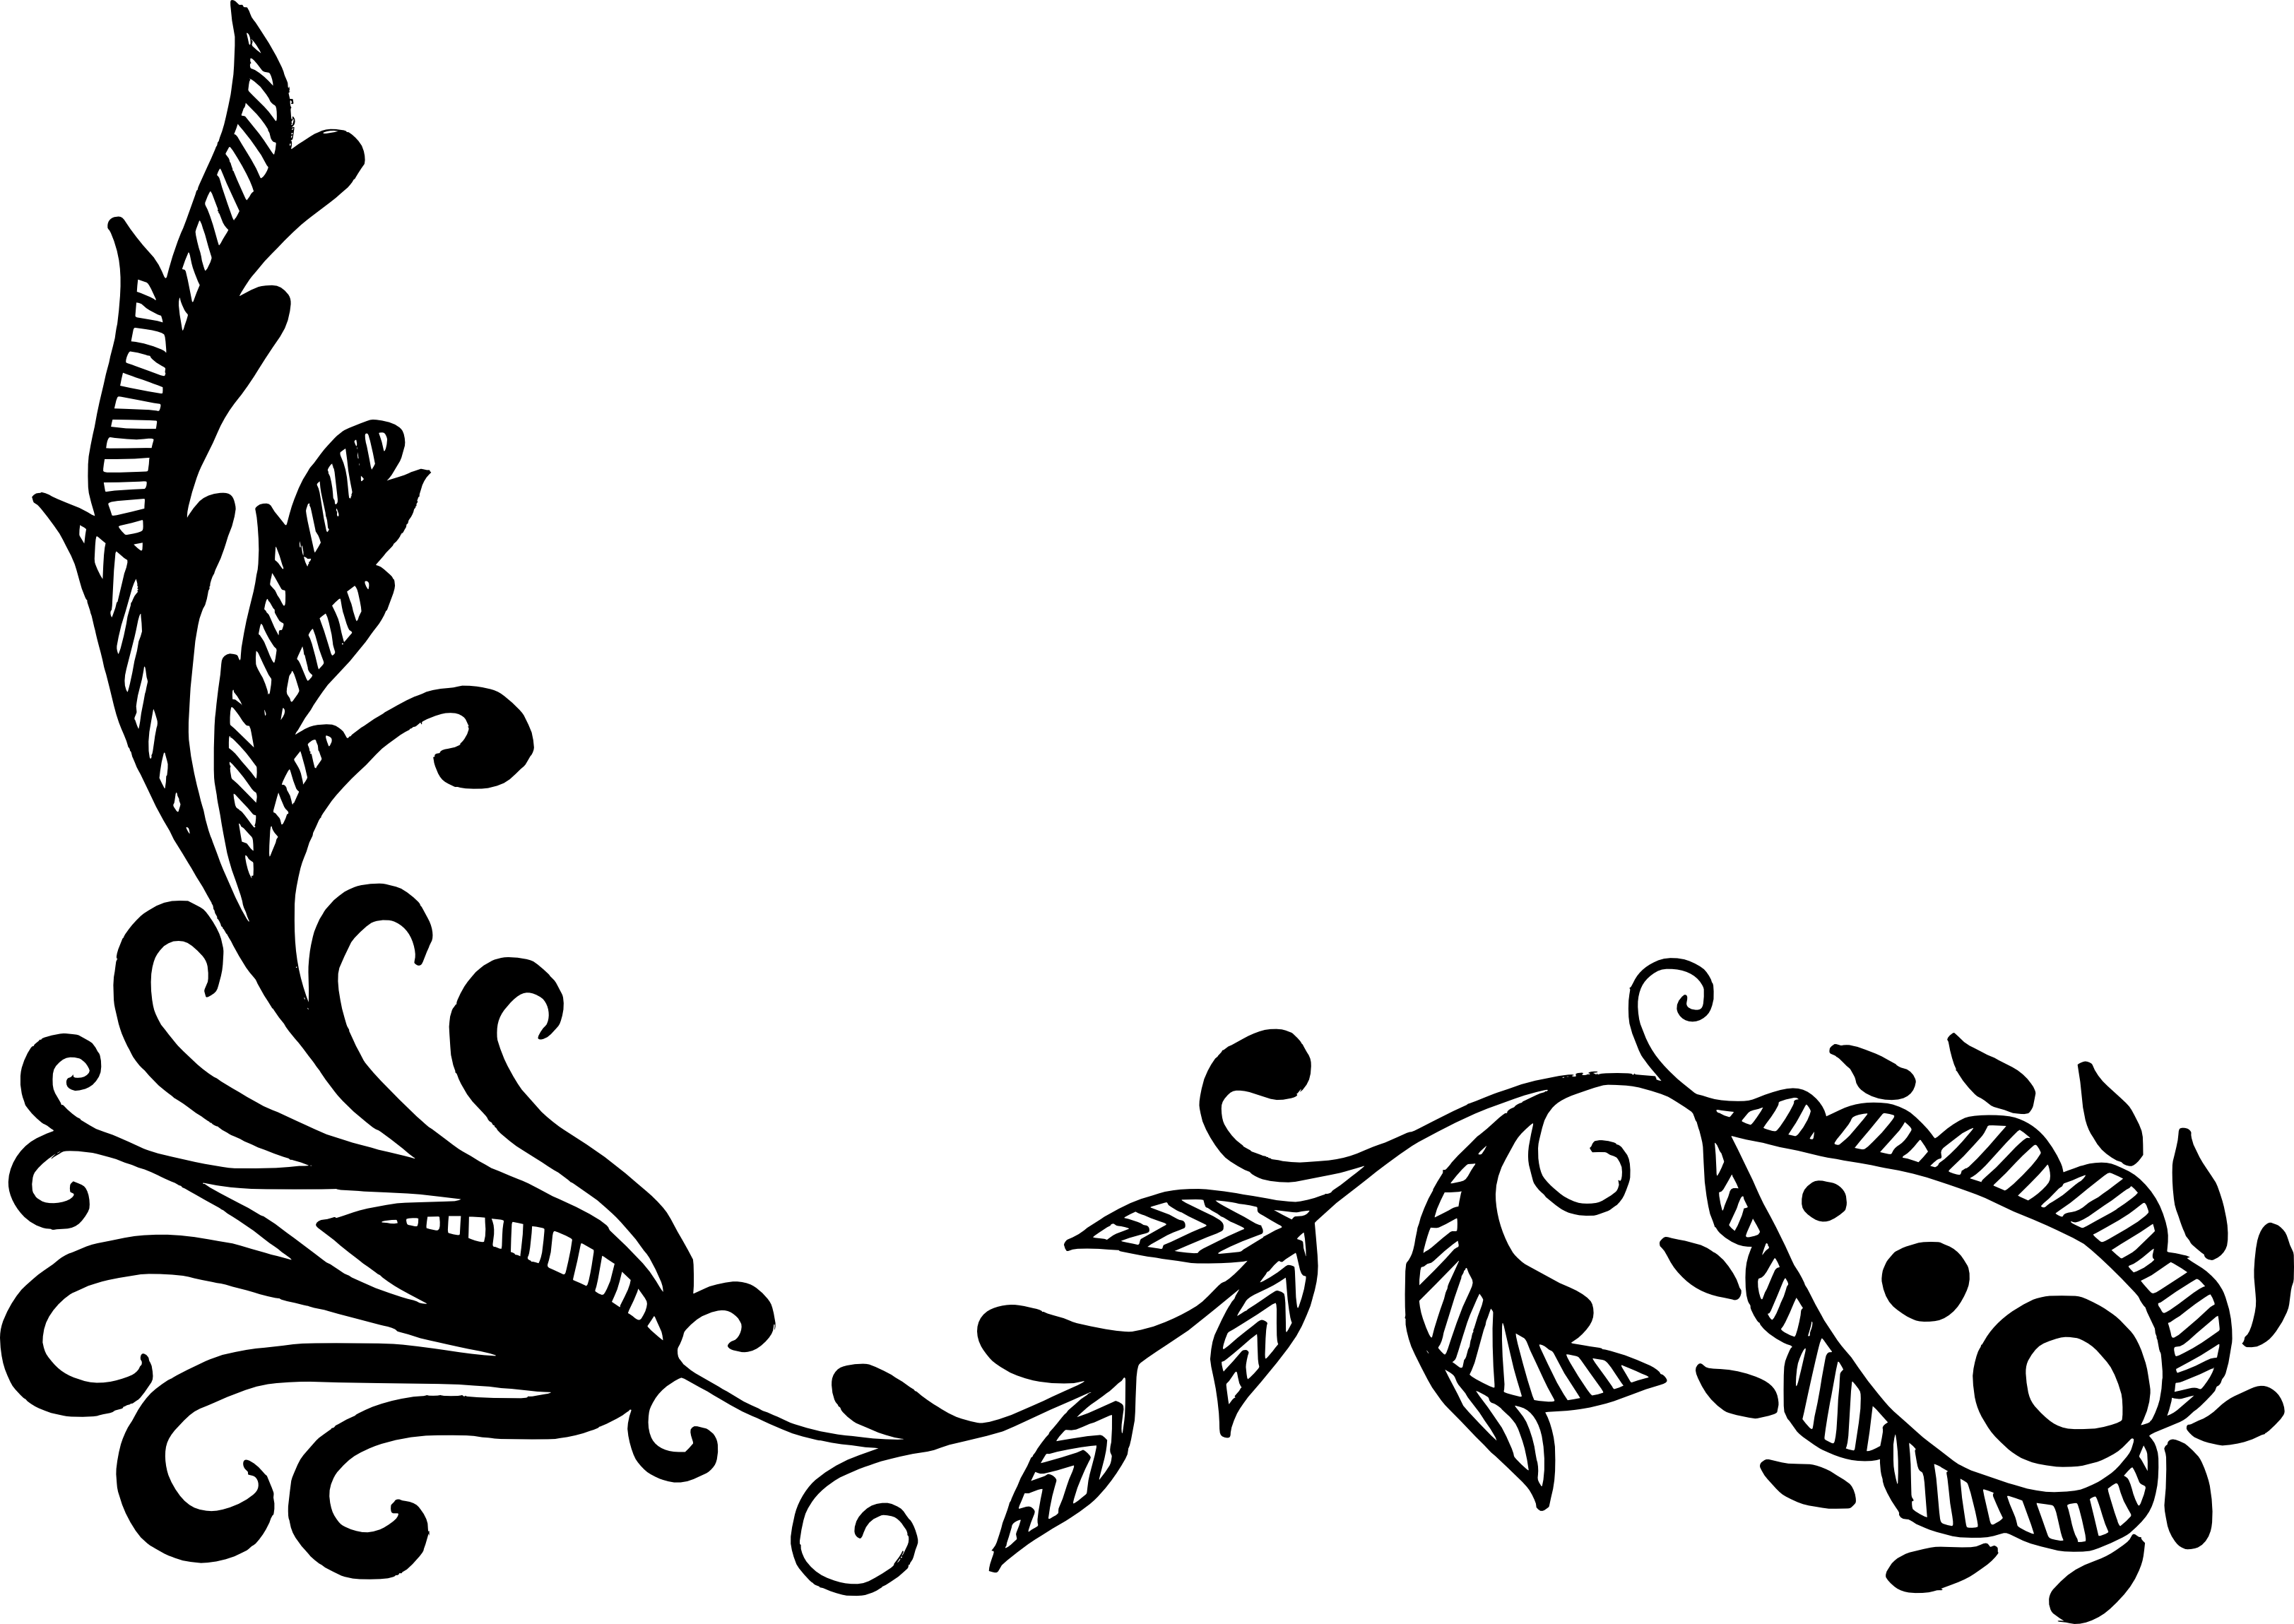 16 Flower Corner Vector (PNG Transparent, SVG) Vol. 2.